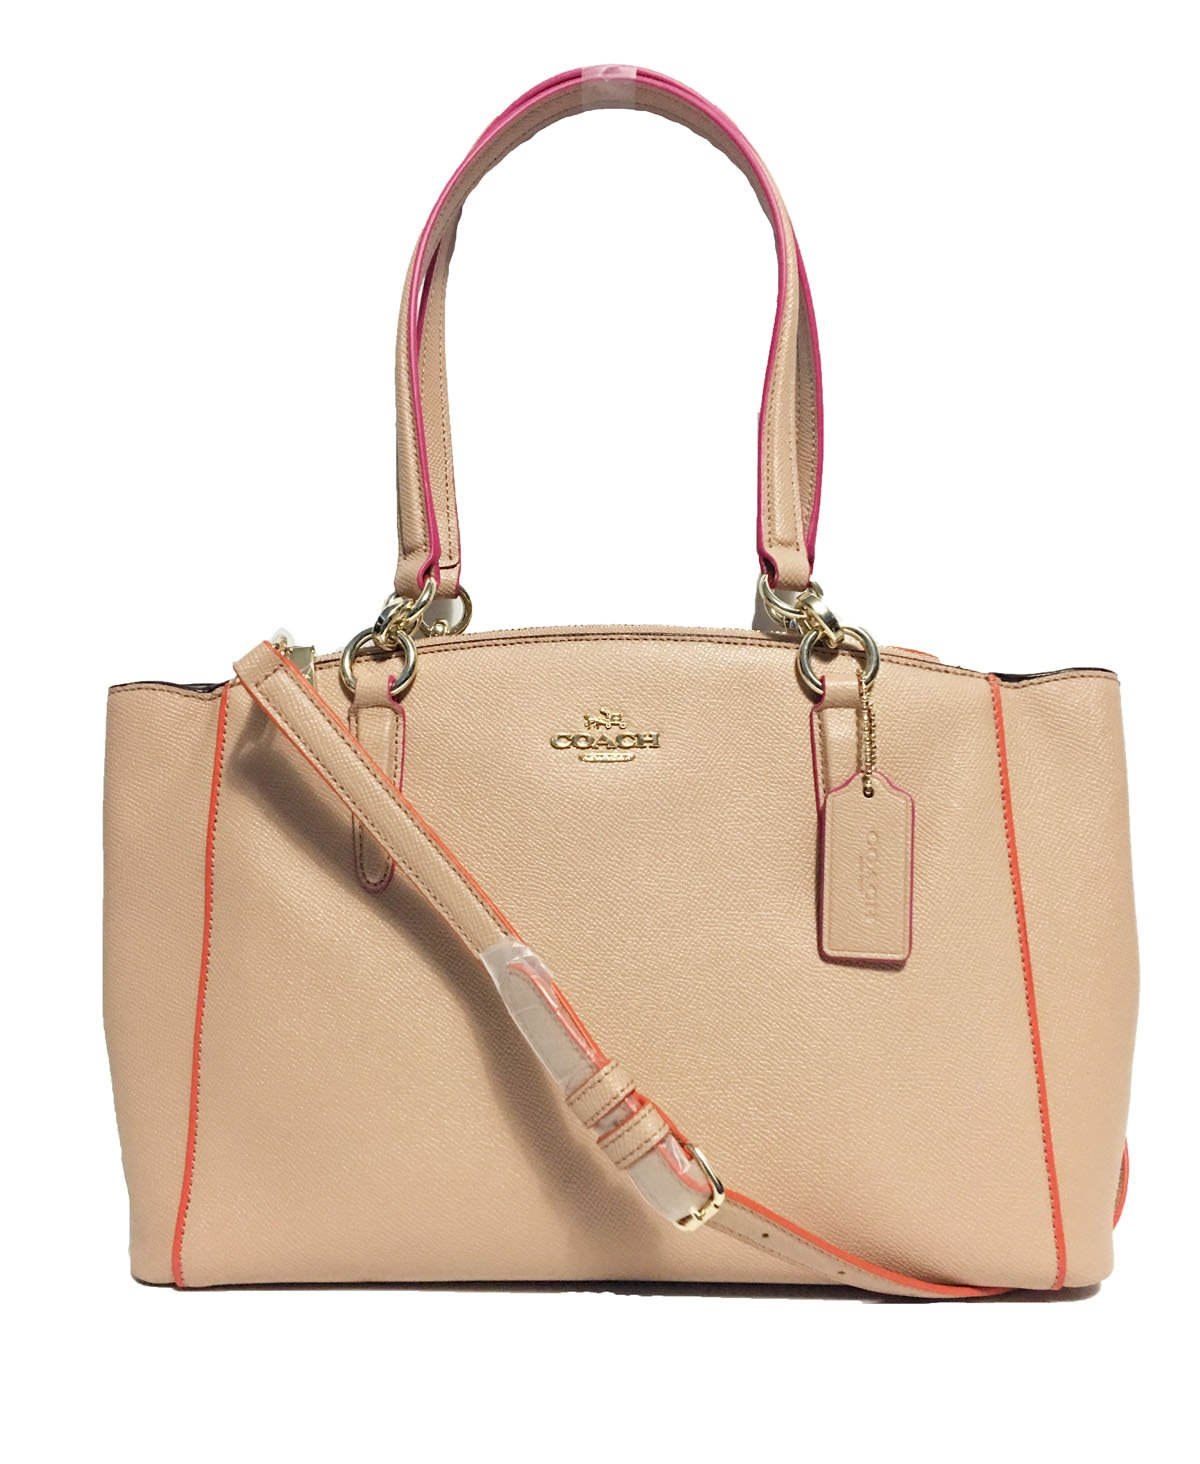 COACH Crossgrain Leather Christie Carryall Handbag (Small, IM/Nude Pink Multi)